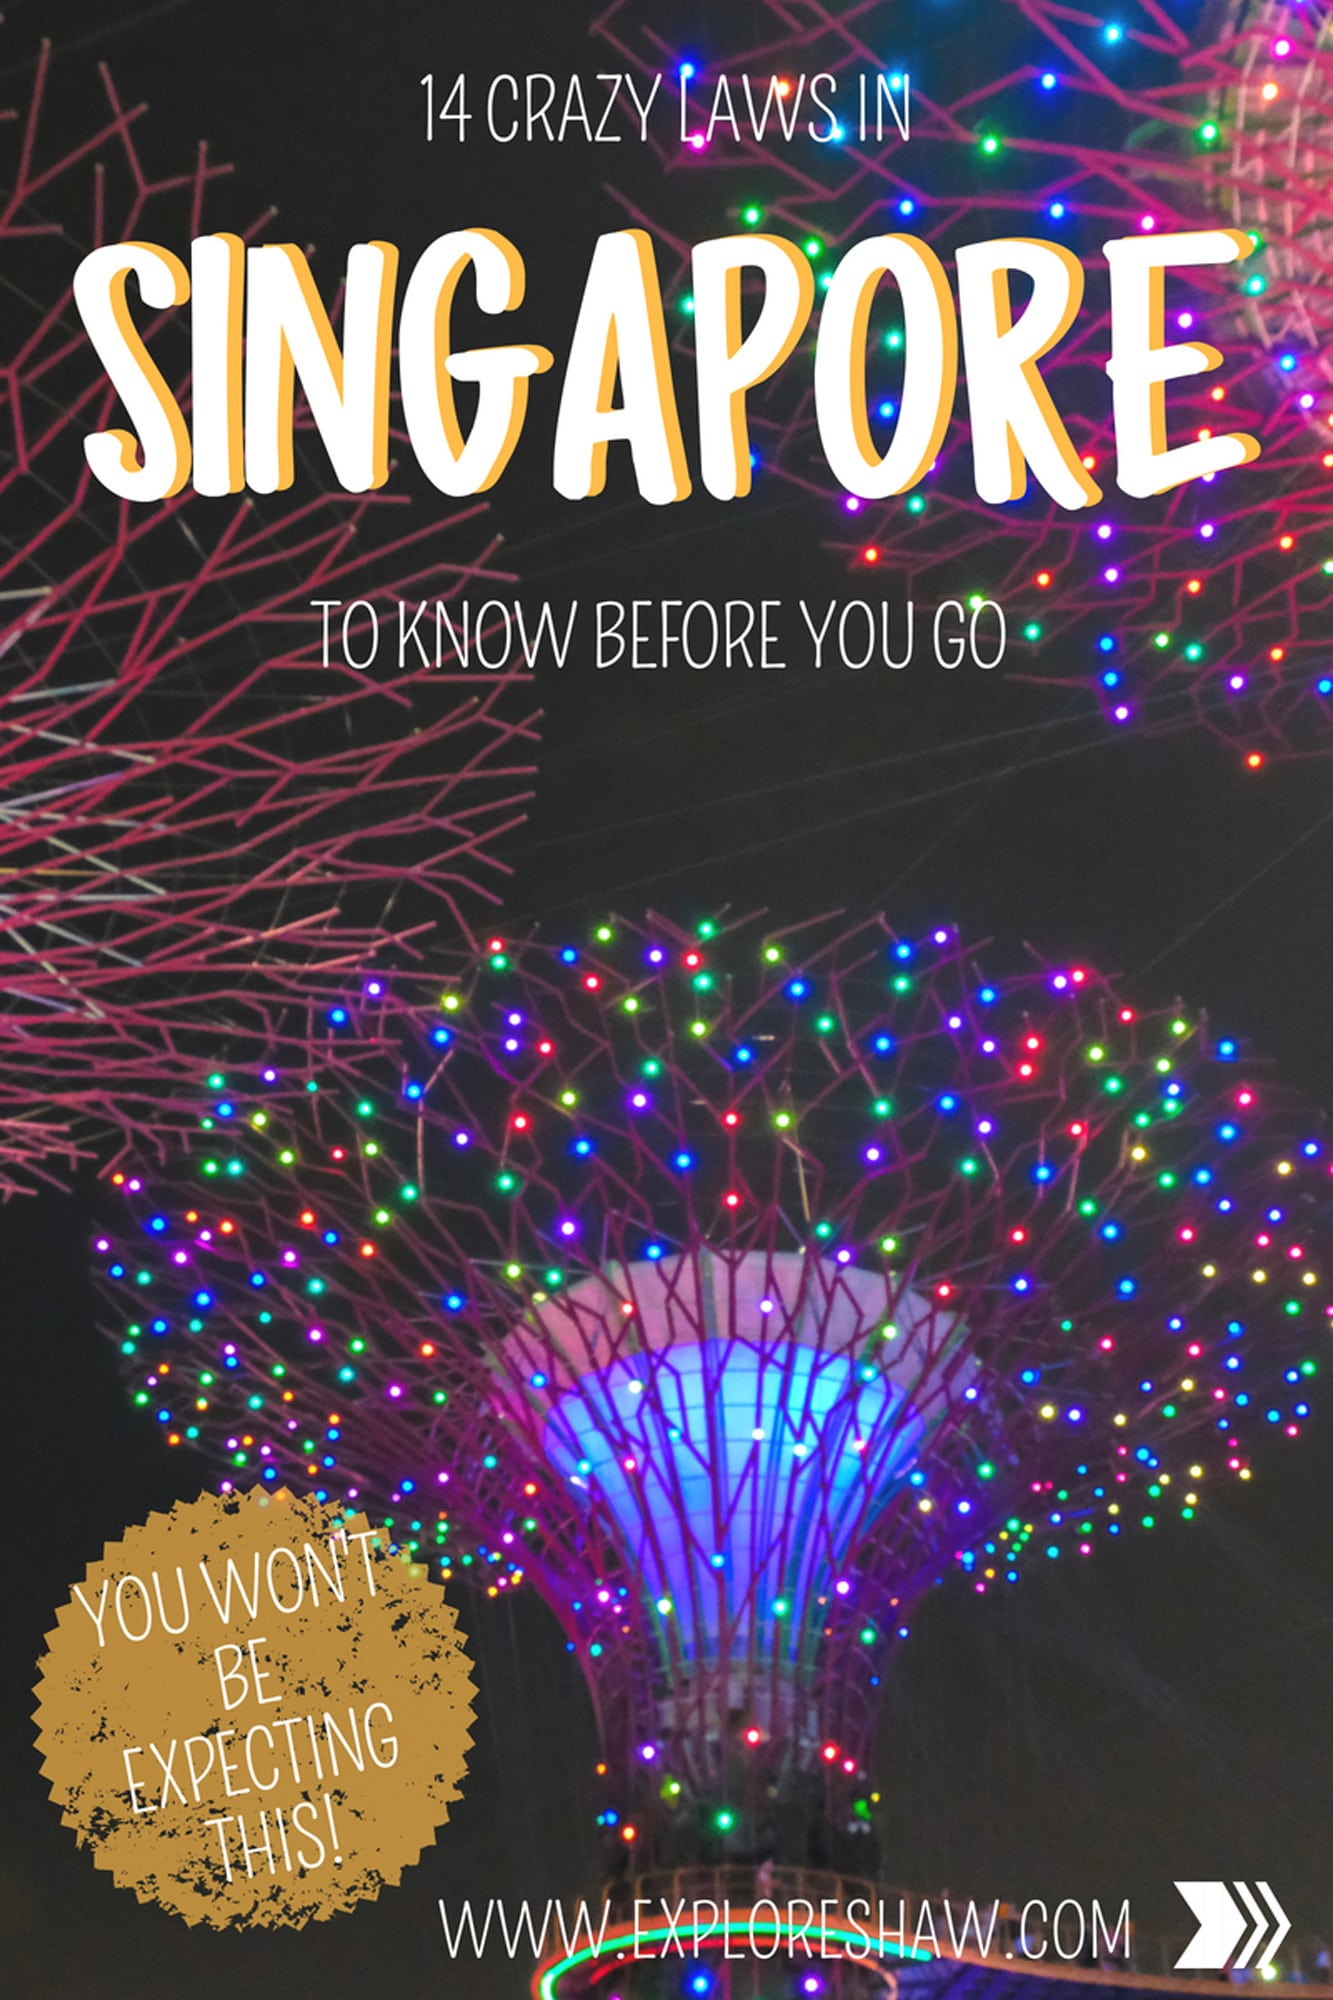 14 crazy laws to know before you go to singapore